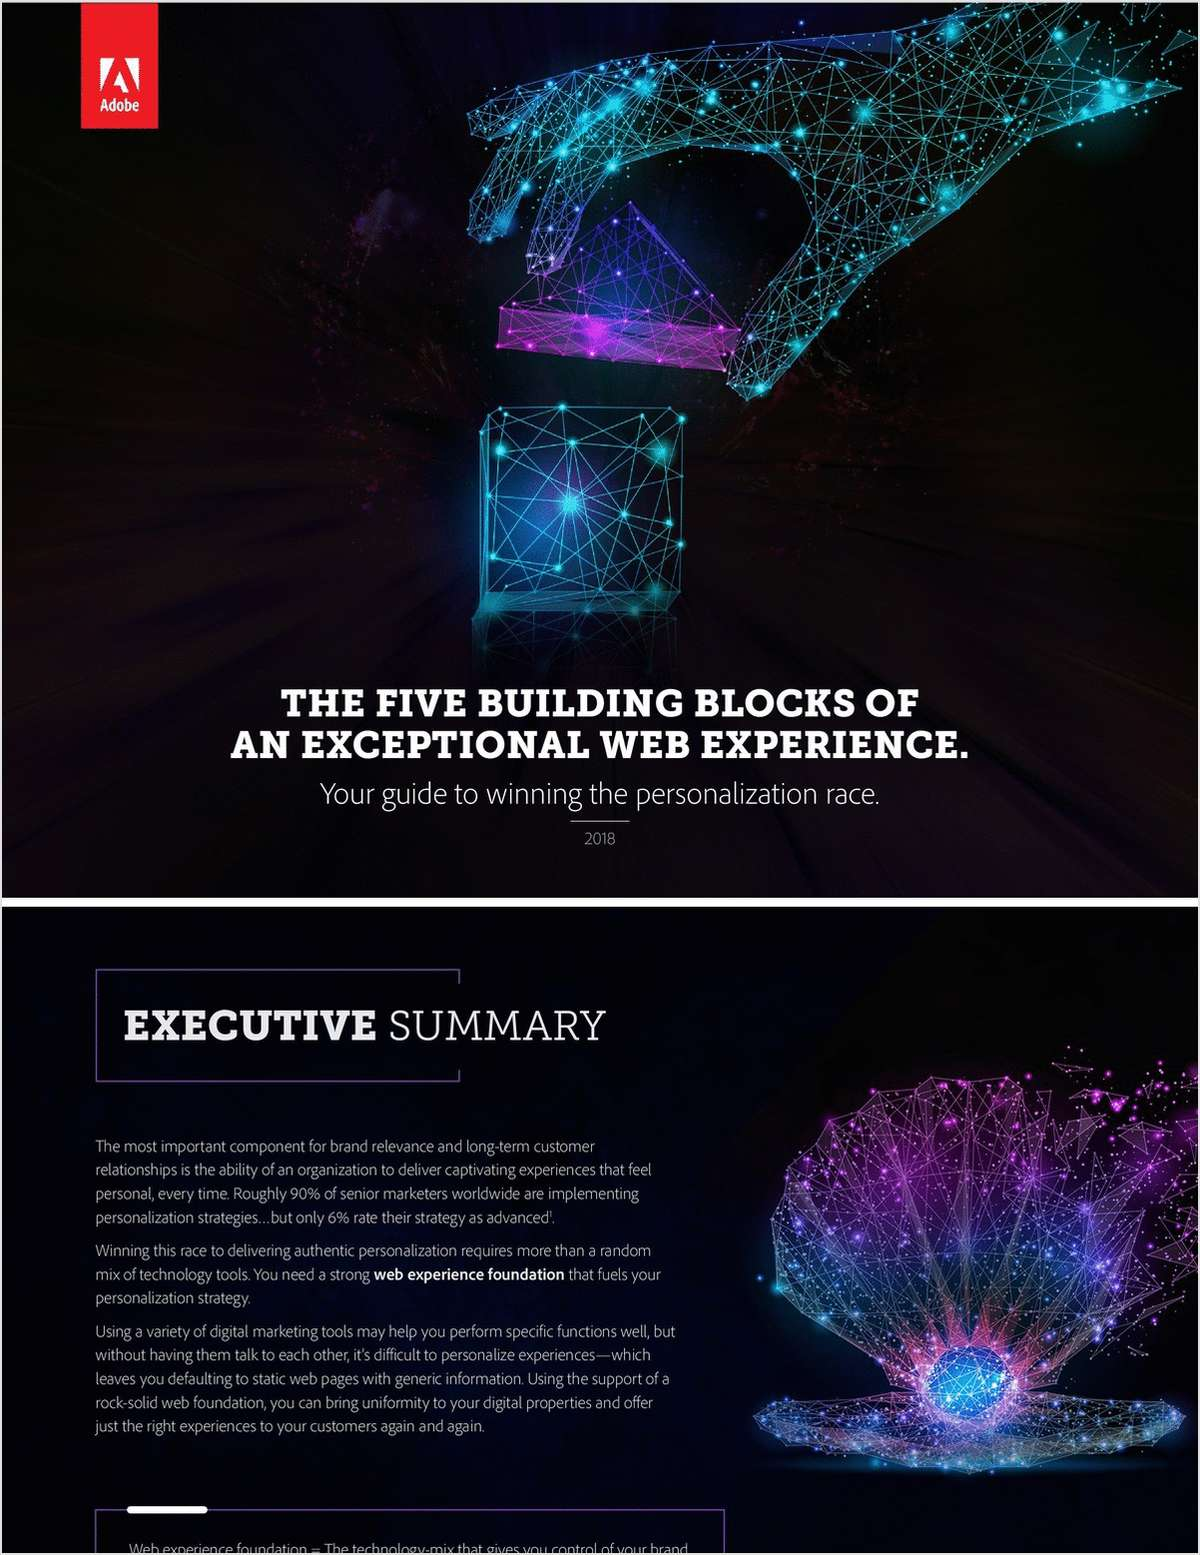 5 Building Blocks of an Exceptional Web Experience